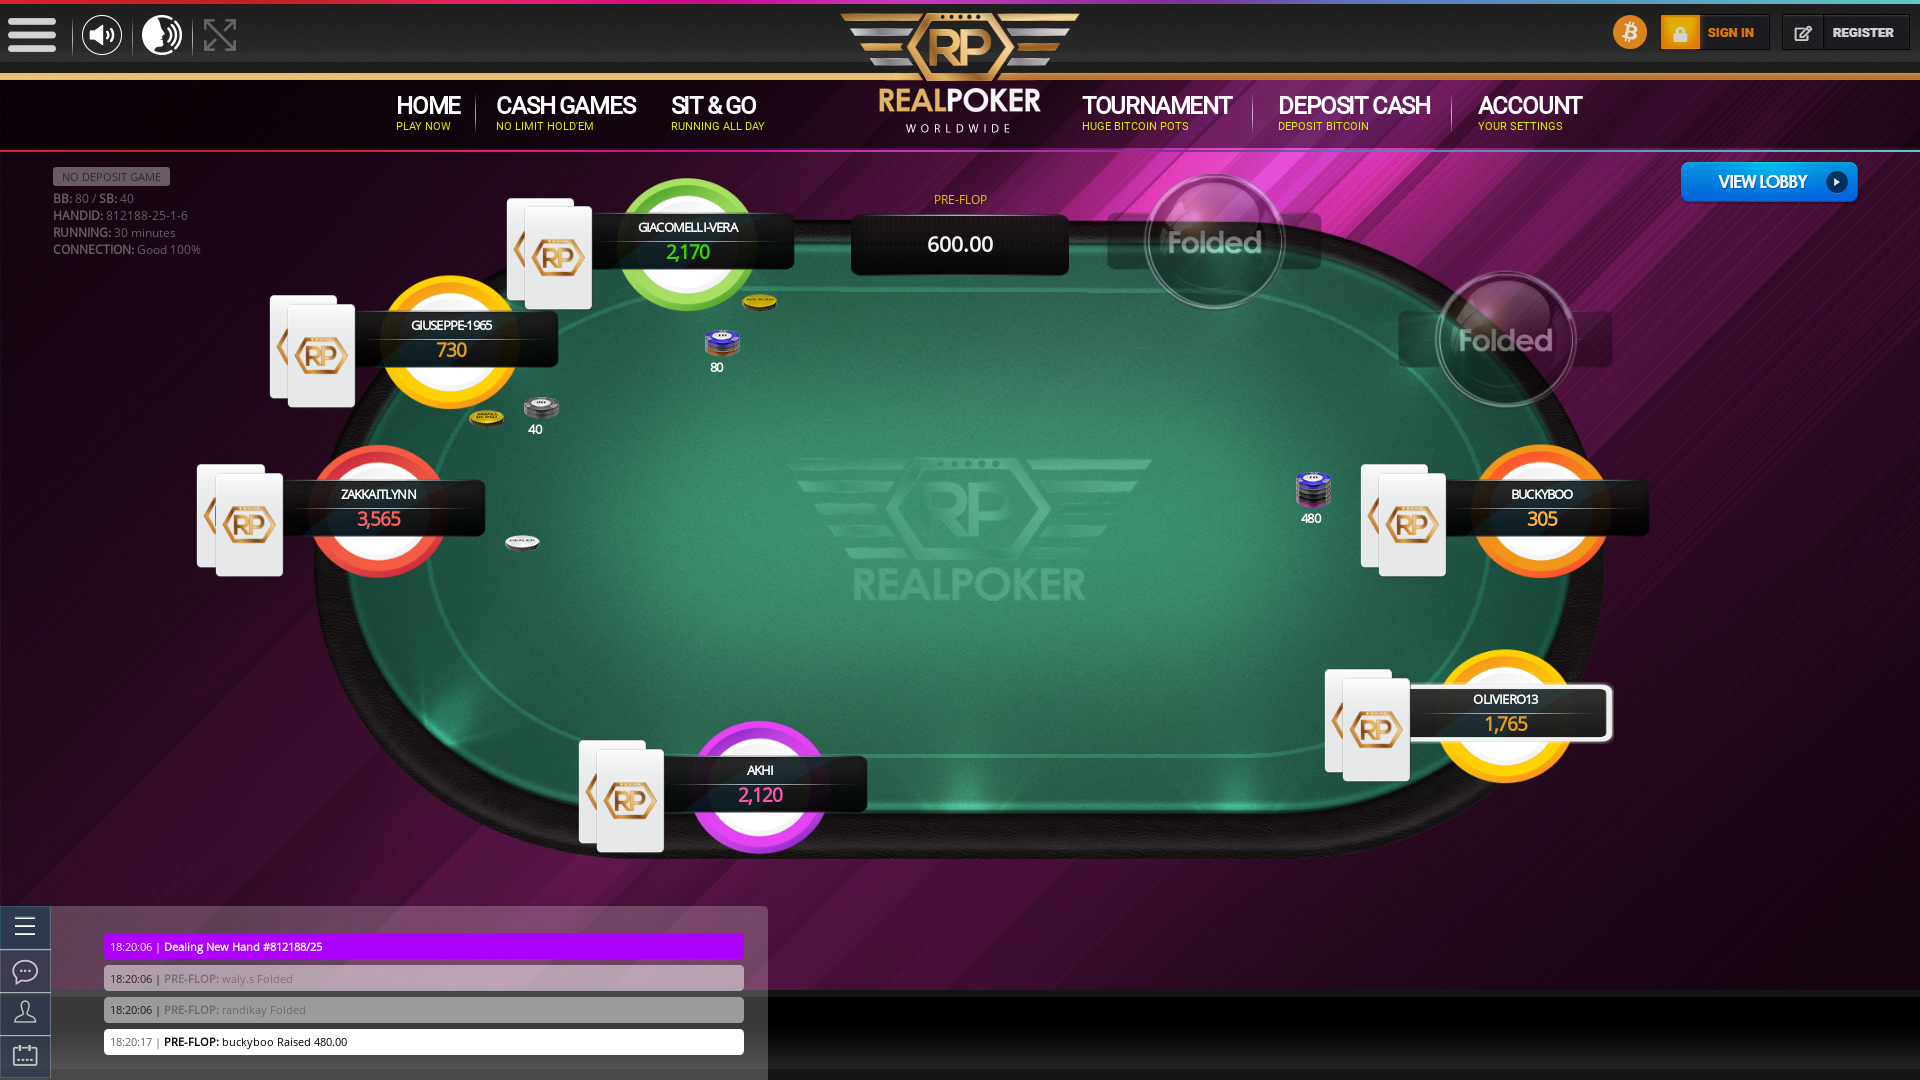 Real poker on a 10 player table in the 30th minute of the game